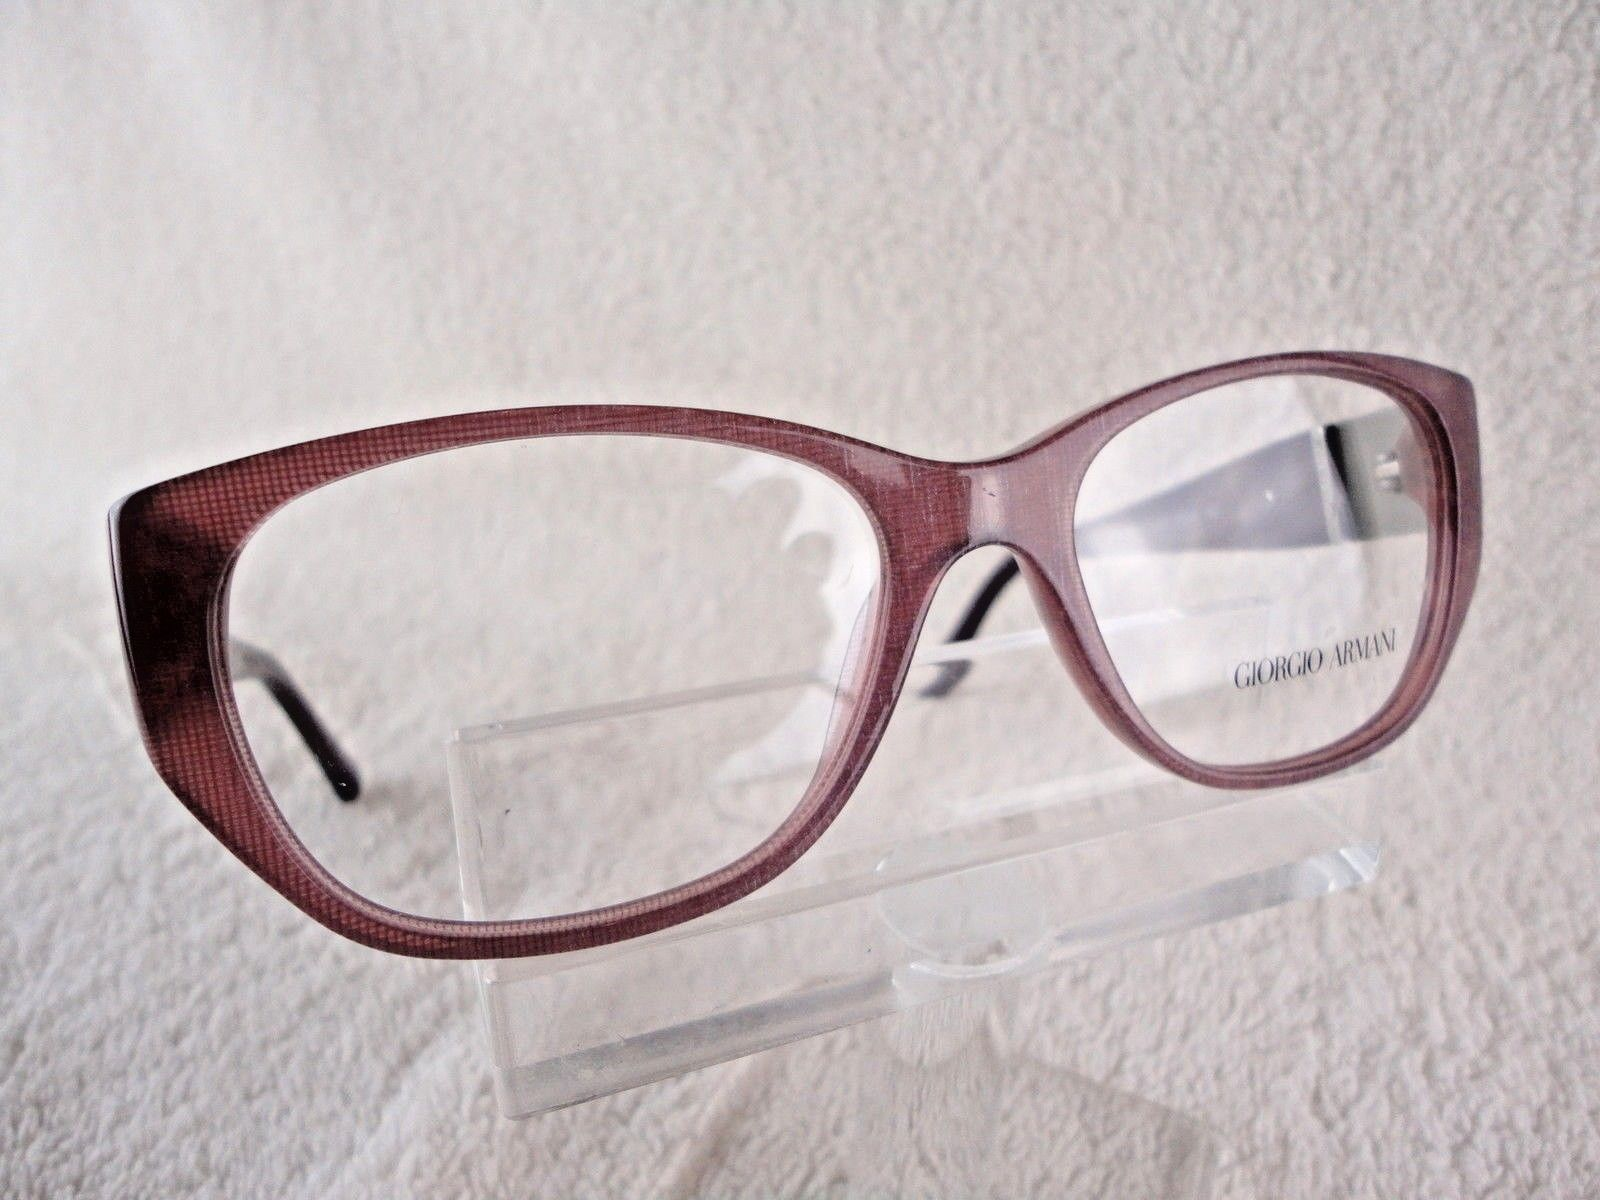 Primary image for Giorgio Armani AR 7016-H (5157) Cherry Fabric  53 X 16 140mm Eyeglass Frame